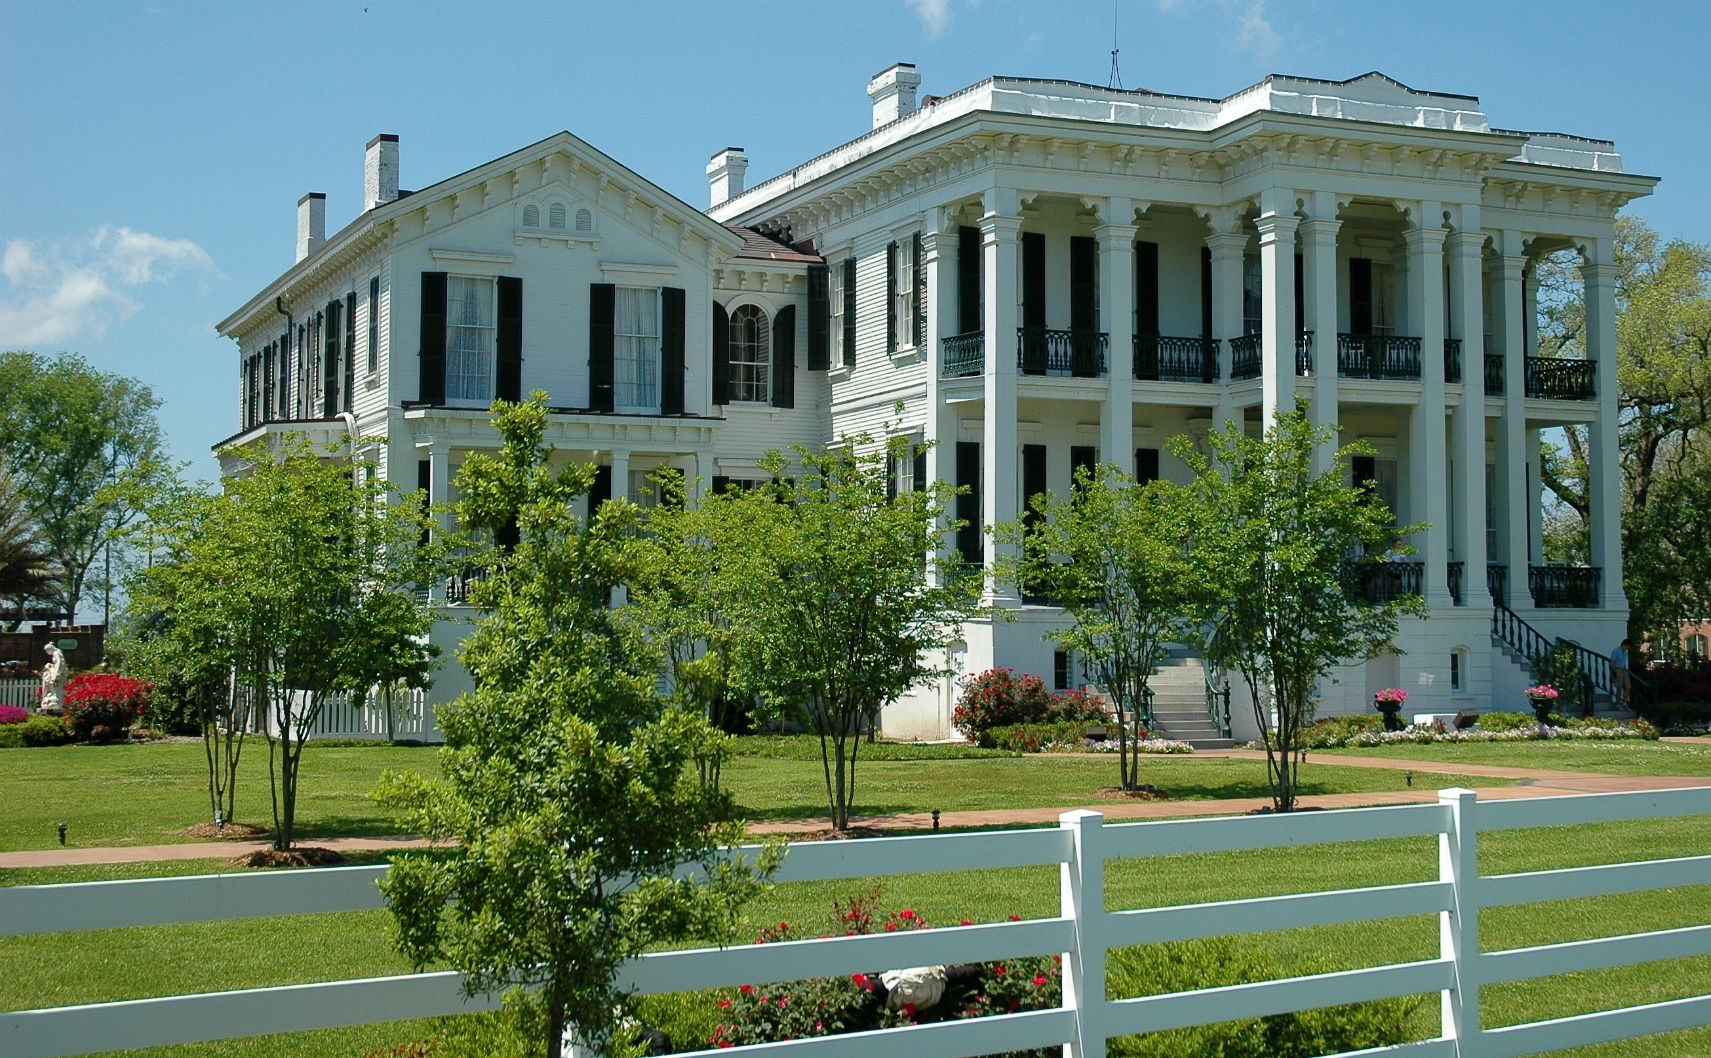 NEW ORLEANS - NOTTOWAY PLANTATION